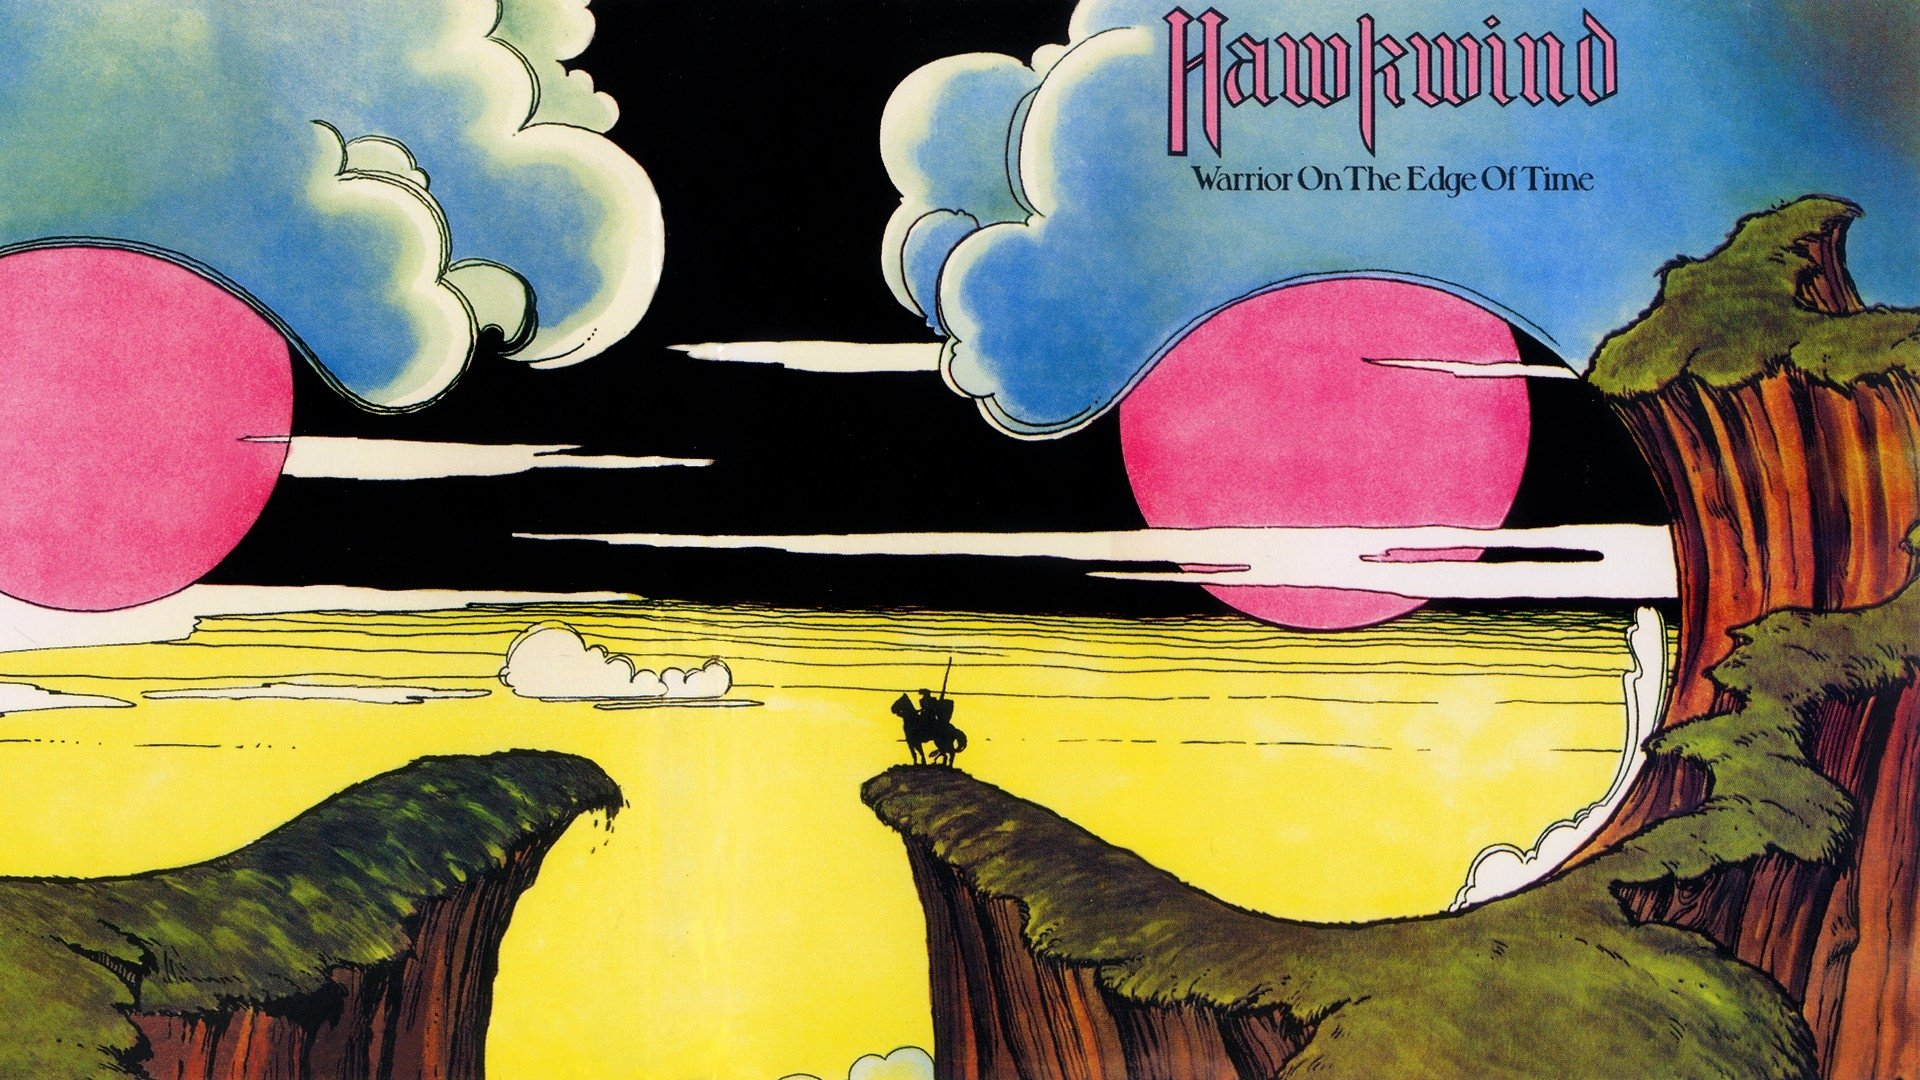 2 Hawkwind Hd Wallpapers Background Images Wallpaper Abyss